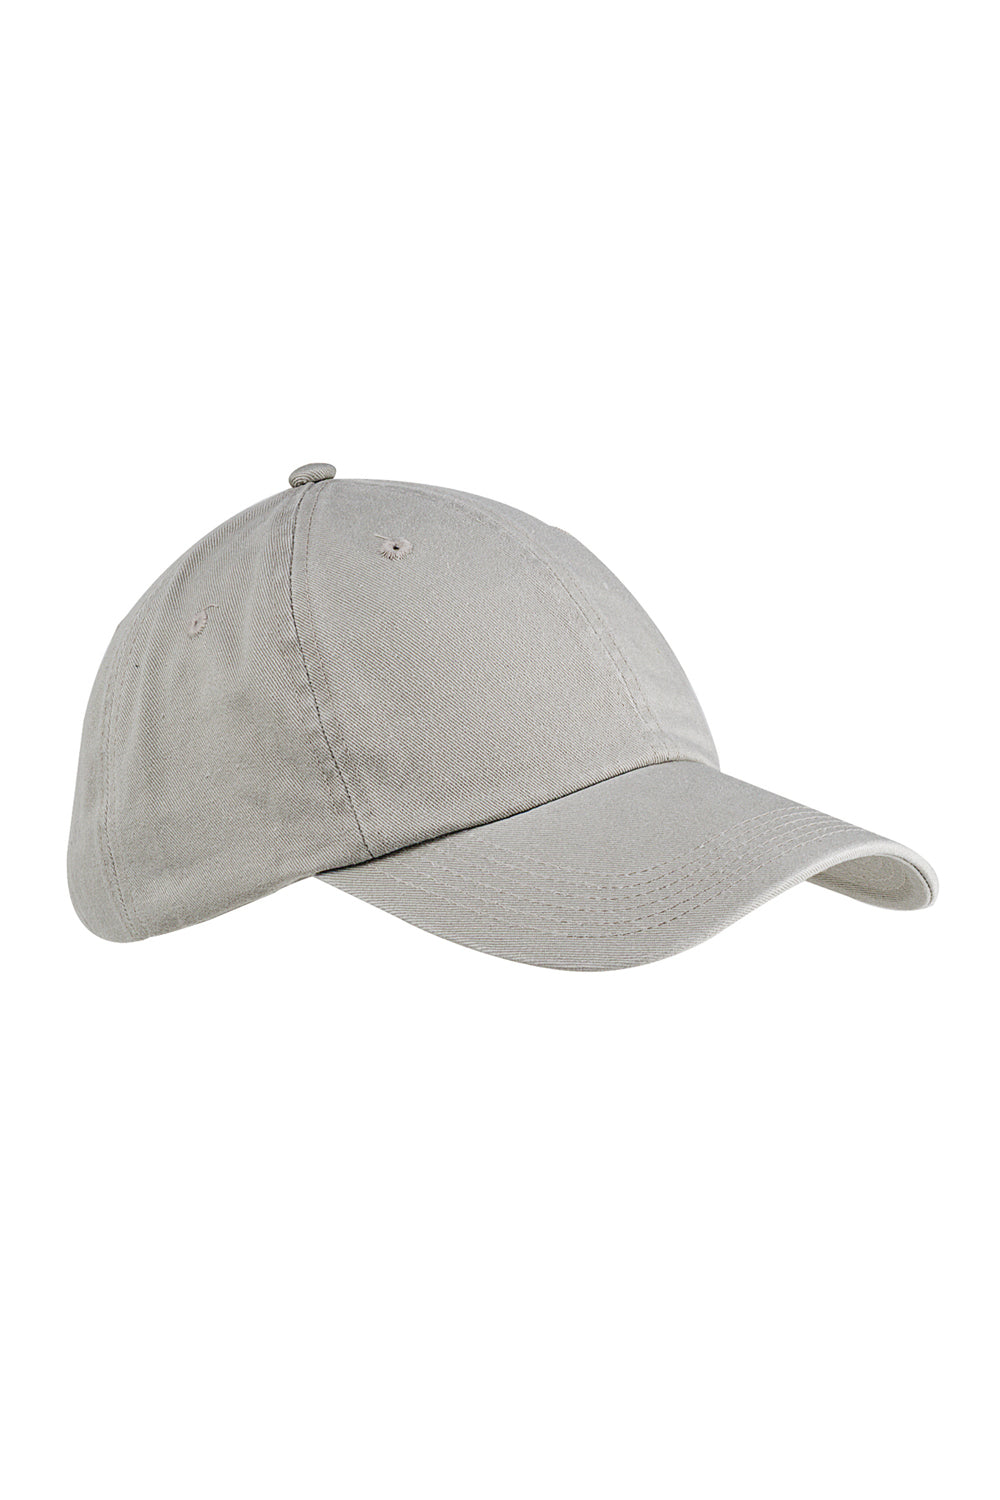 Big Accessories BX005 Mens Adjustable Hat Stone Front